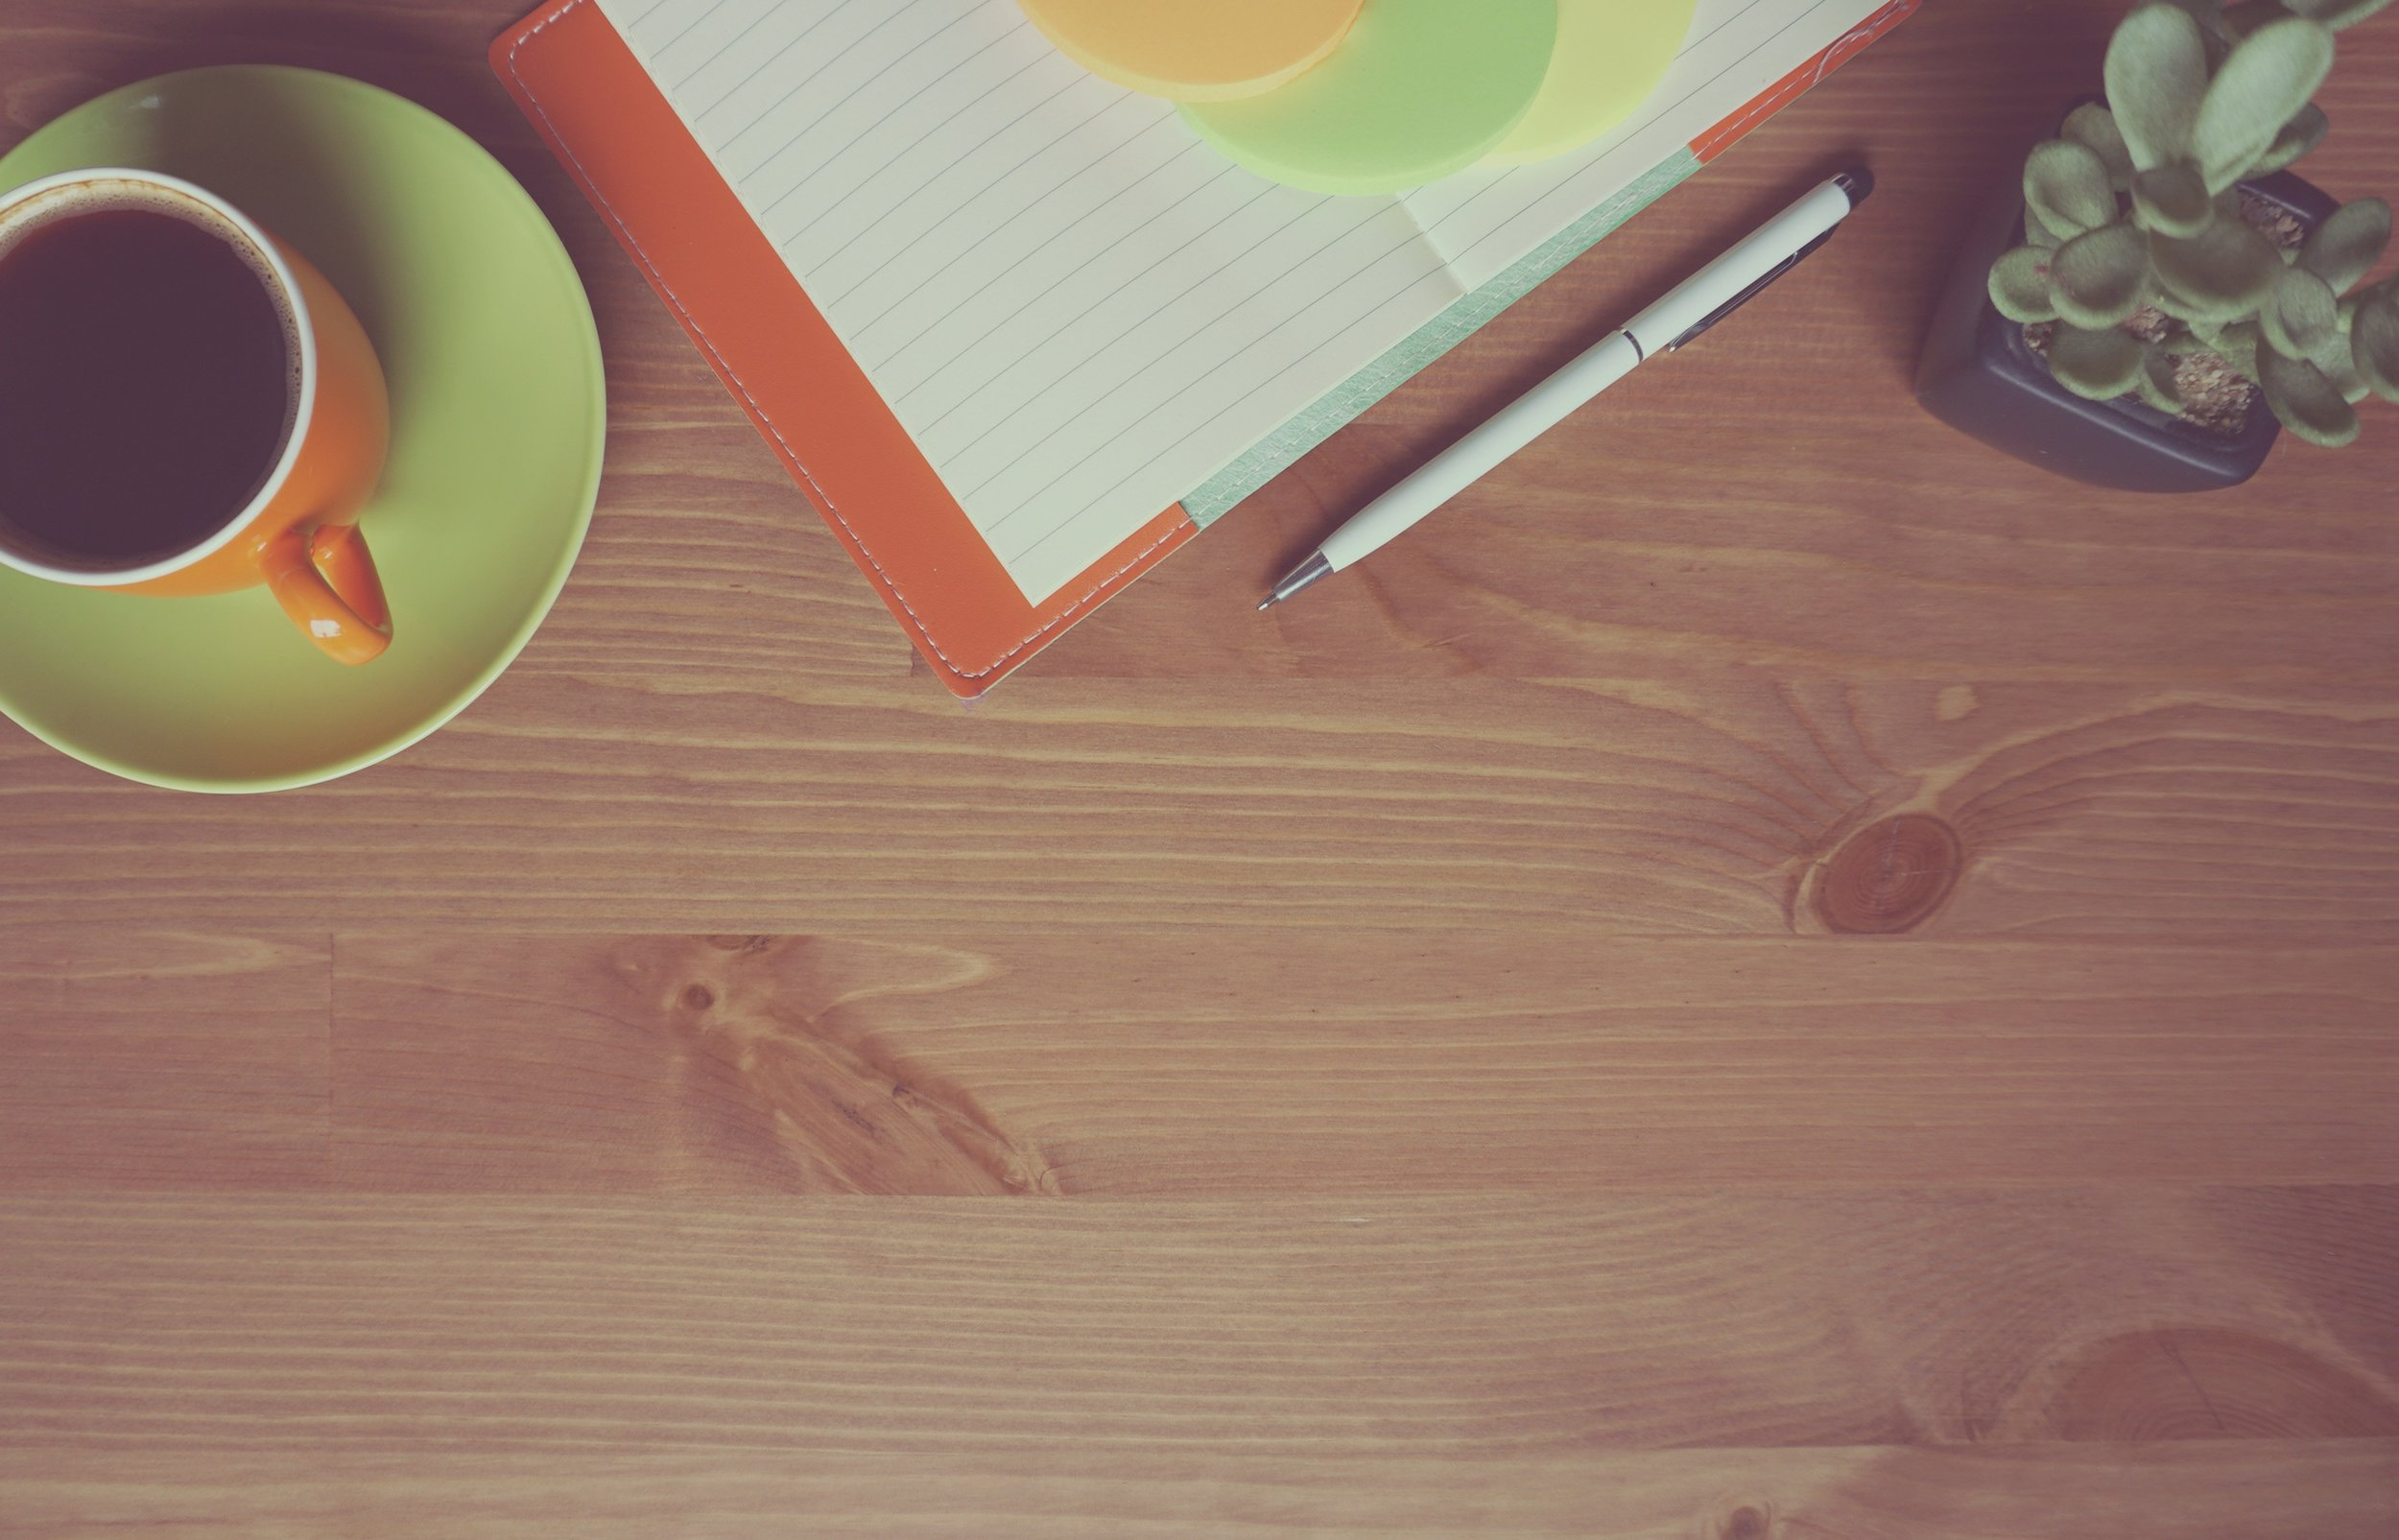 coffee-green-cup-notebook-wood-table-pen-plant-freephotoscc.jpg